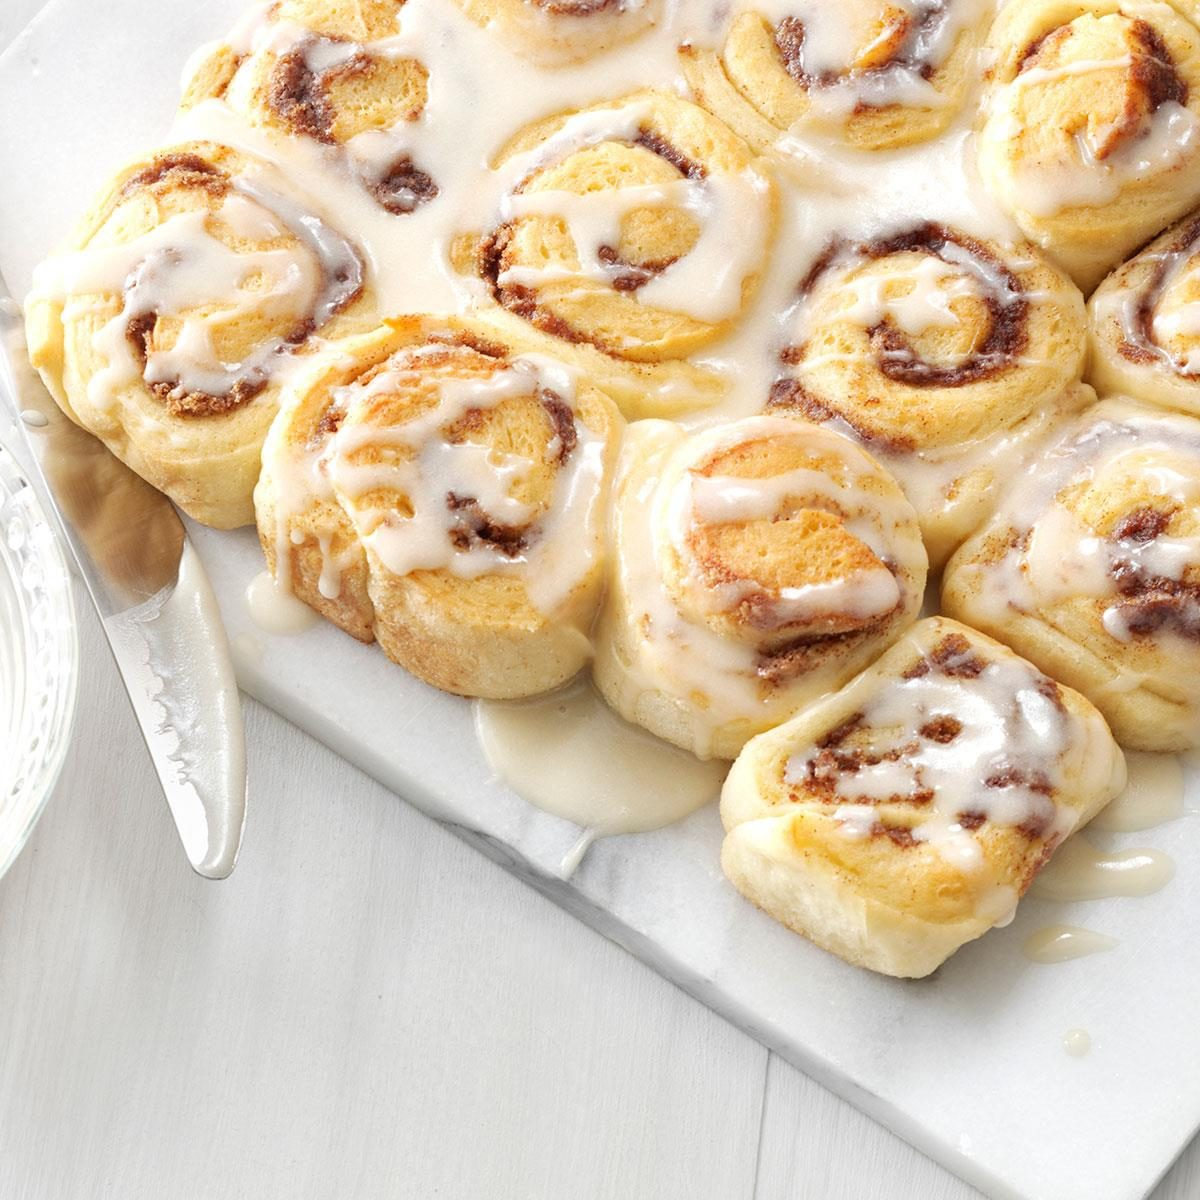 Wcg two cinnamon buns - 1 4